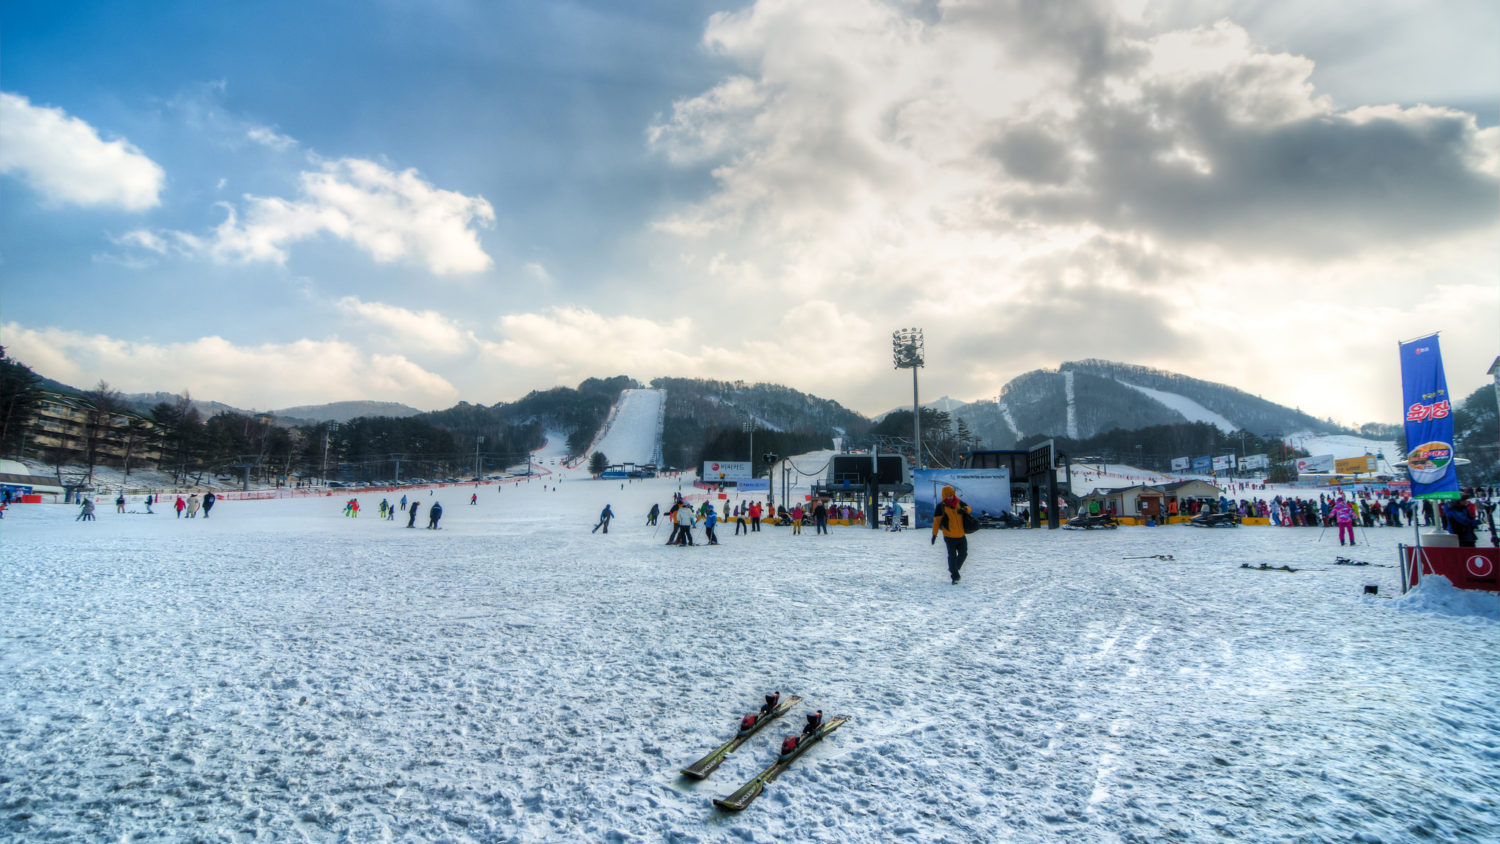 Yongpyong Ski Resort lifts and terrain